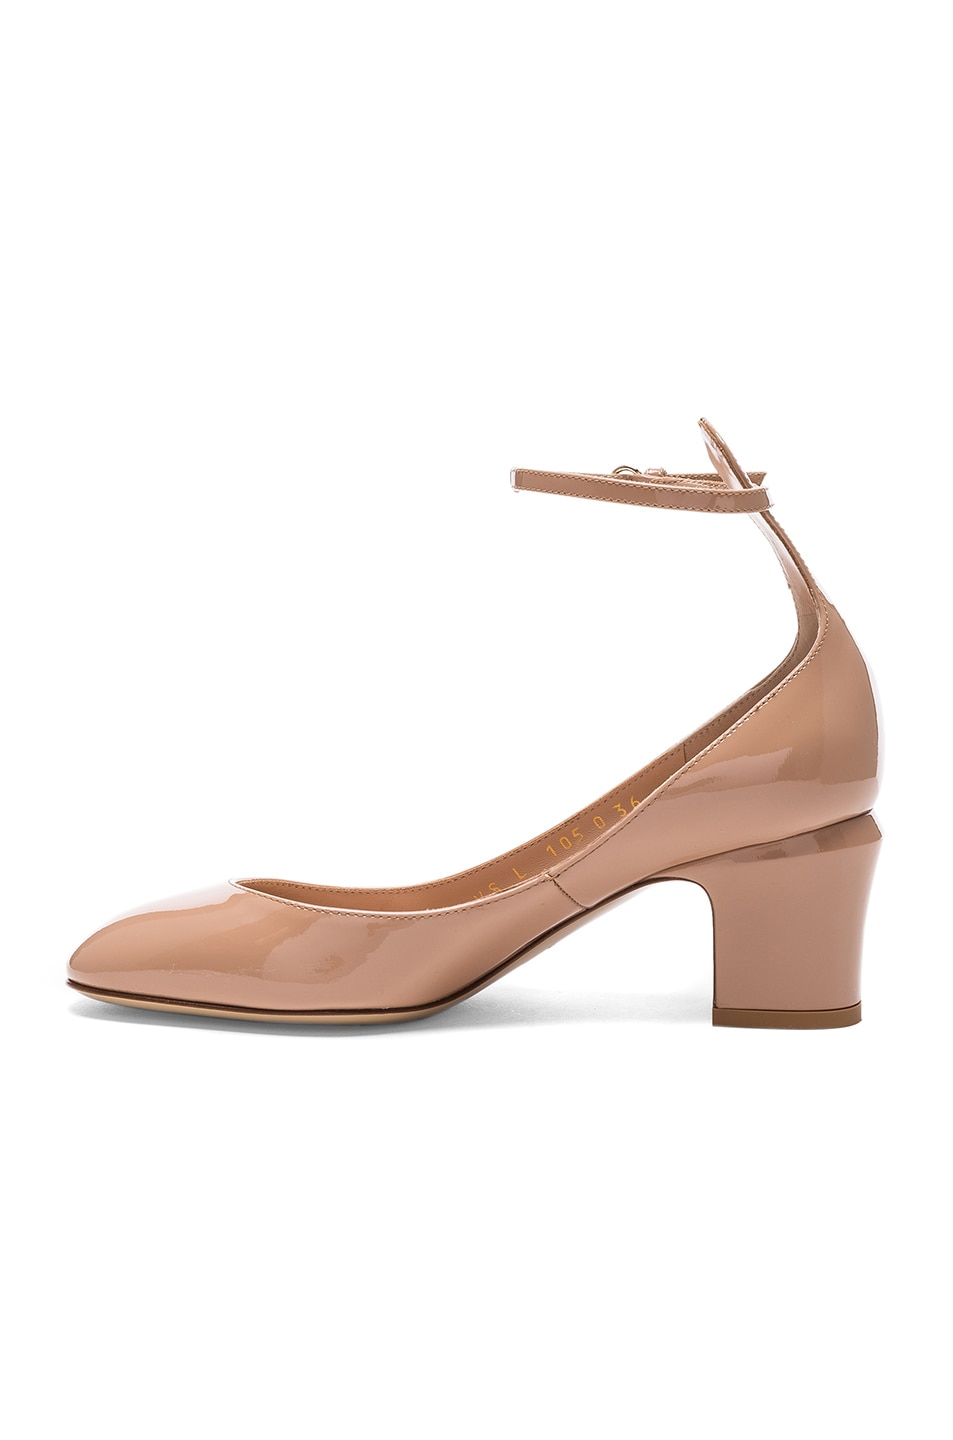 Image 5 of Valentino Patent Leather Tan-Go Pumps in Soft Noisette